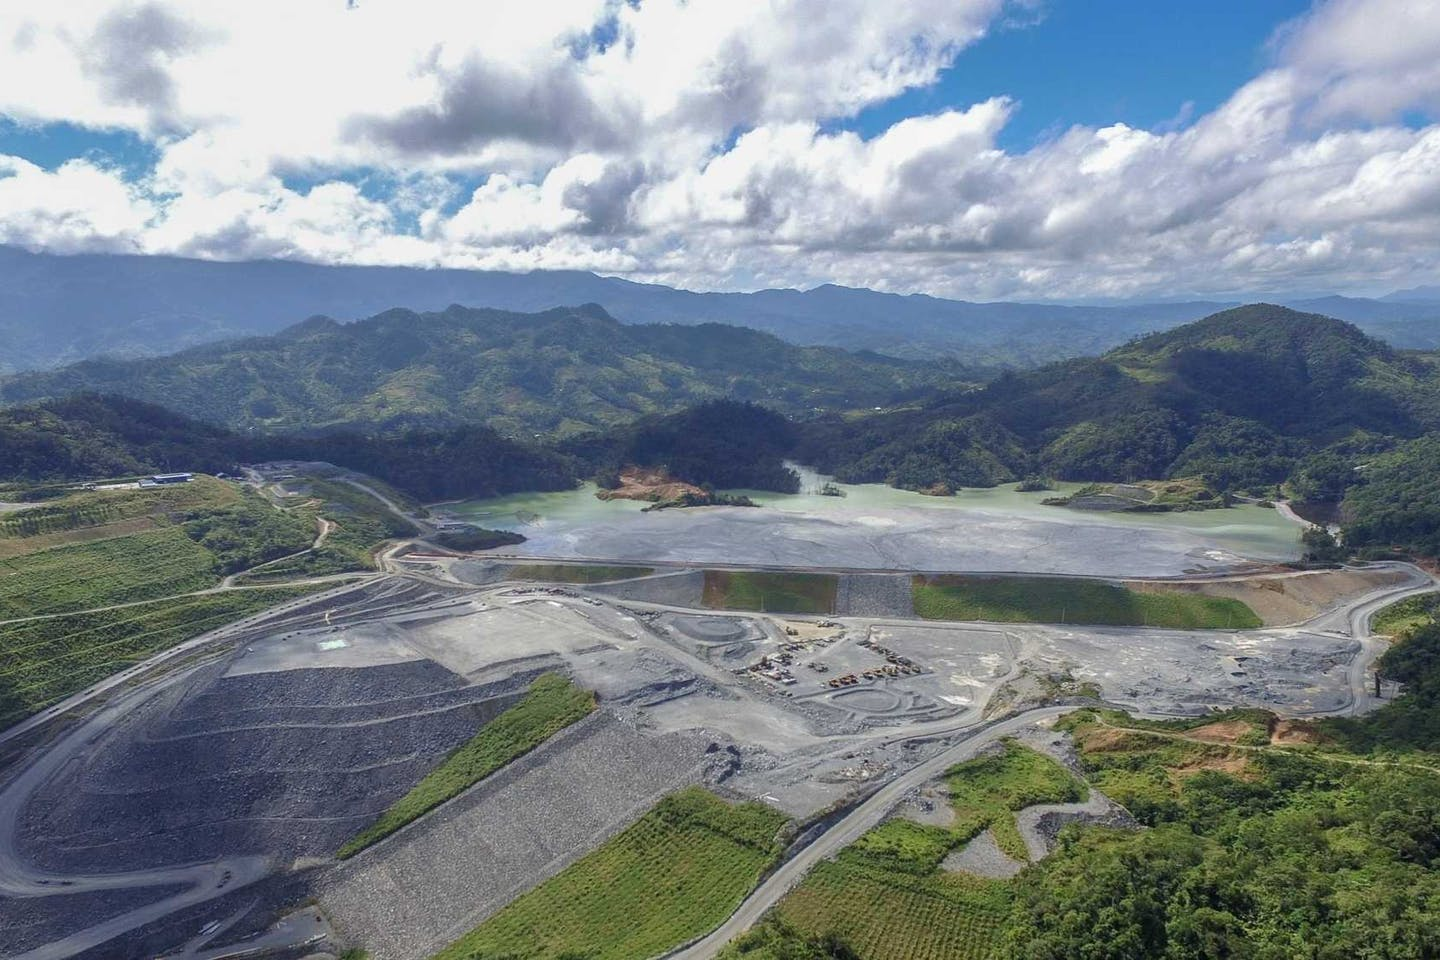 OceanaGold's gold and copper mine in  Didipio, Philippines